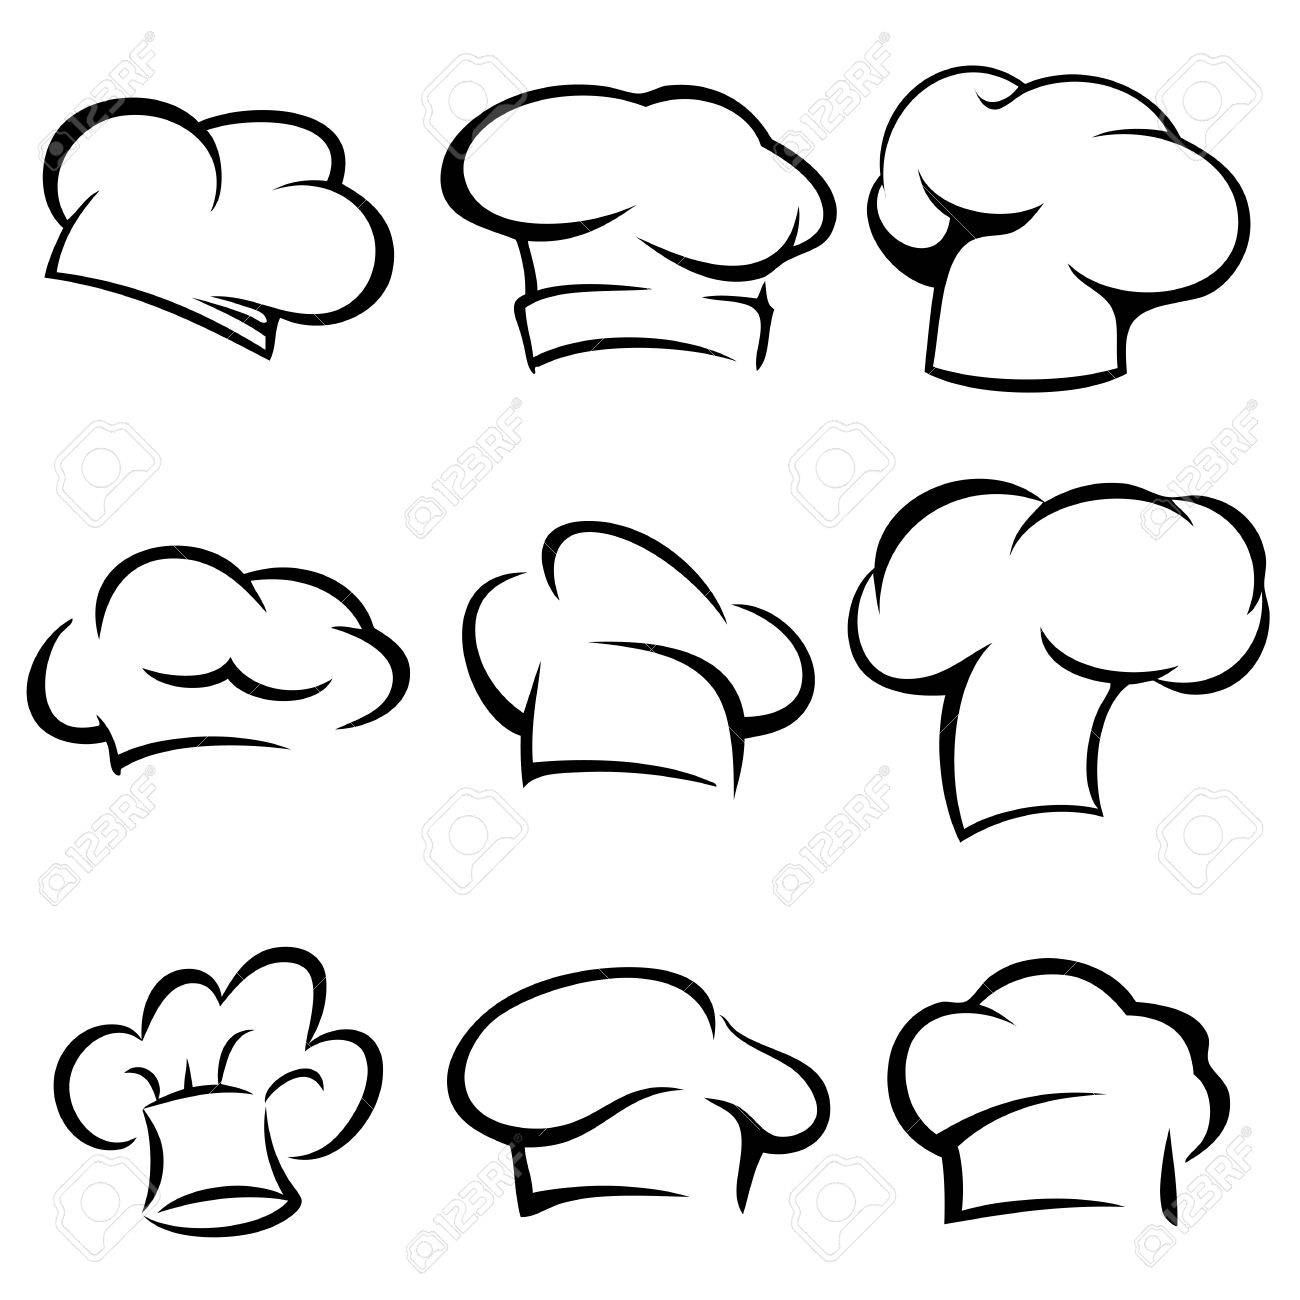 set of chef hats icons stylized silhouettes royalty free cliparts